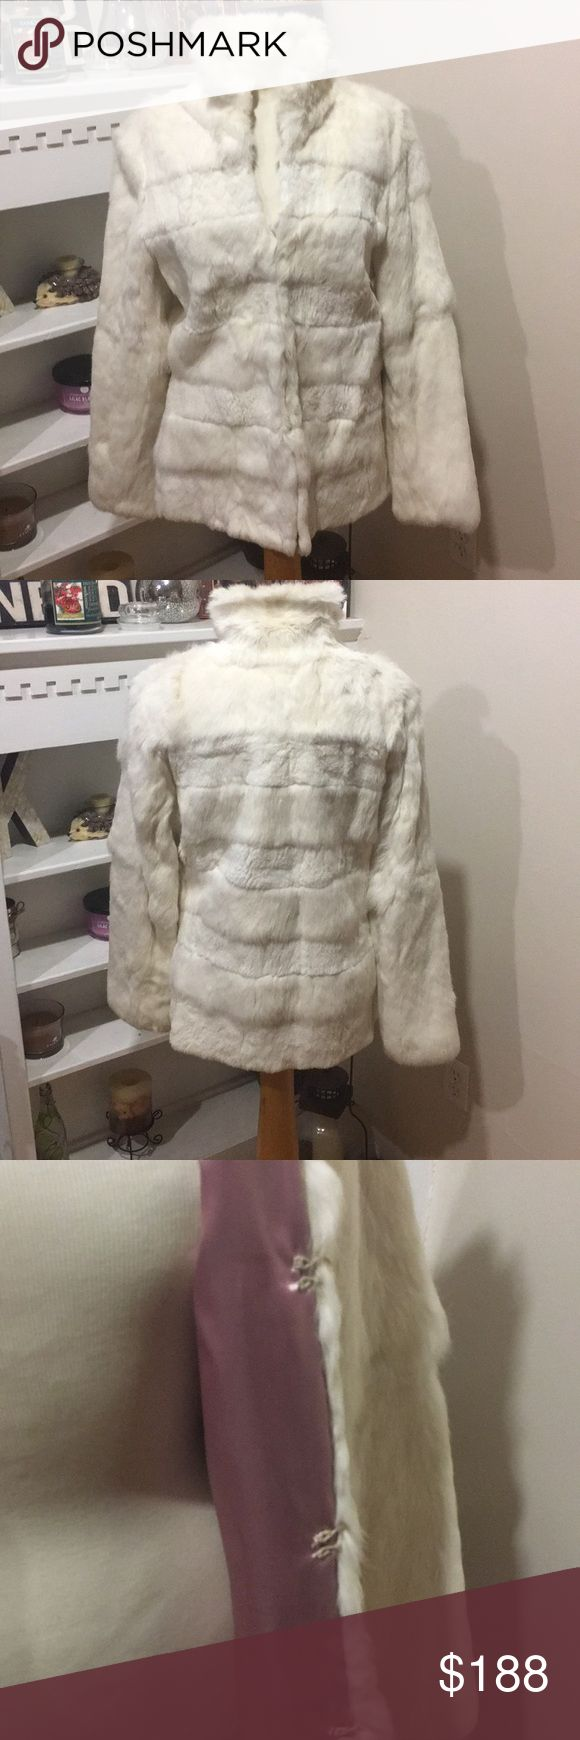 100% rabbit fur coat Gorgeous  white rabbit fur coat in perfect condition  pictures of clasps button pictures as well as tag for care accepting offered 💕 Jackets & Coats